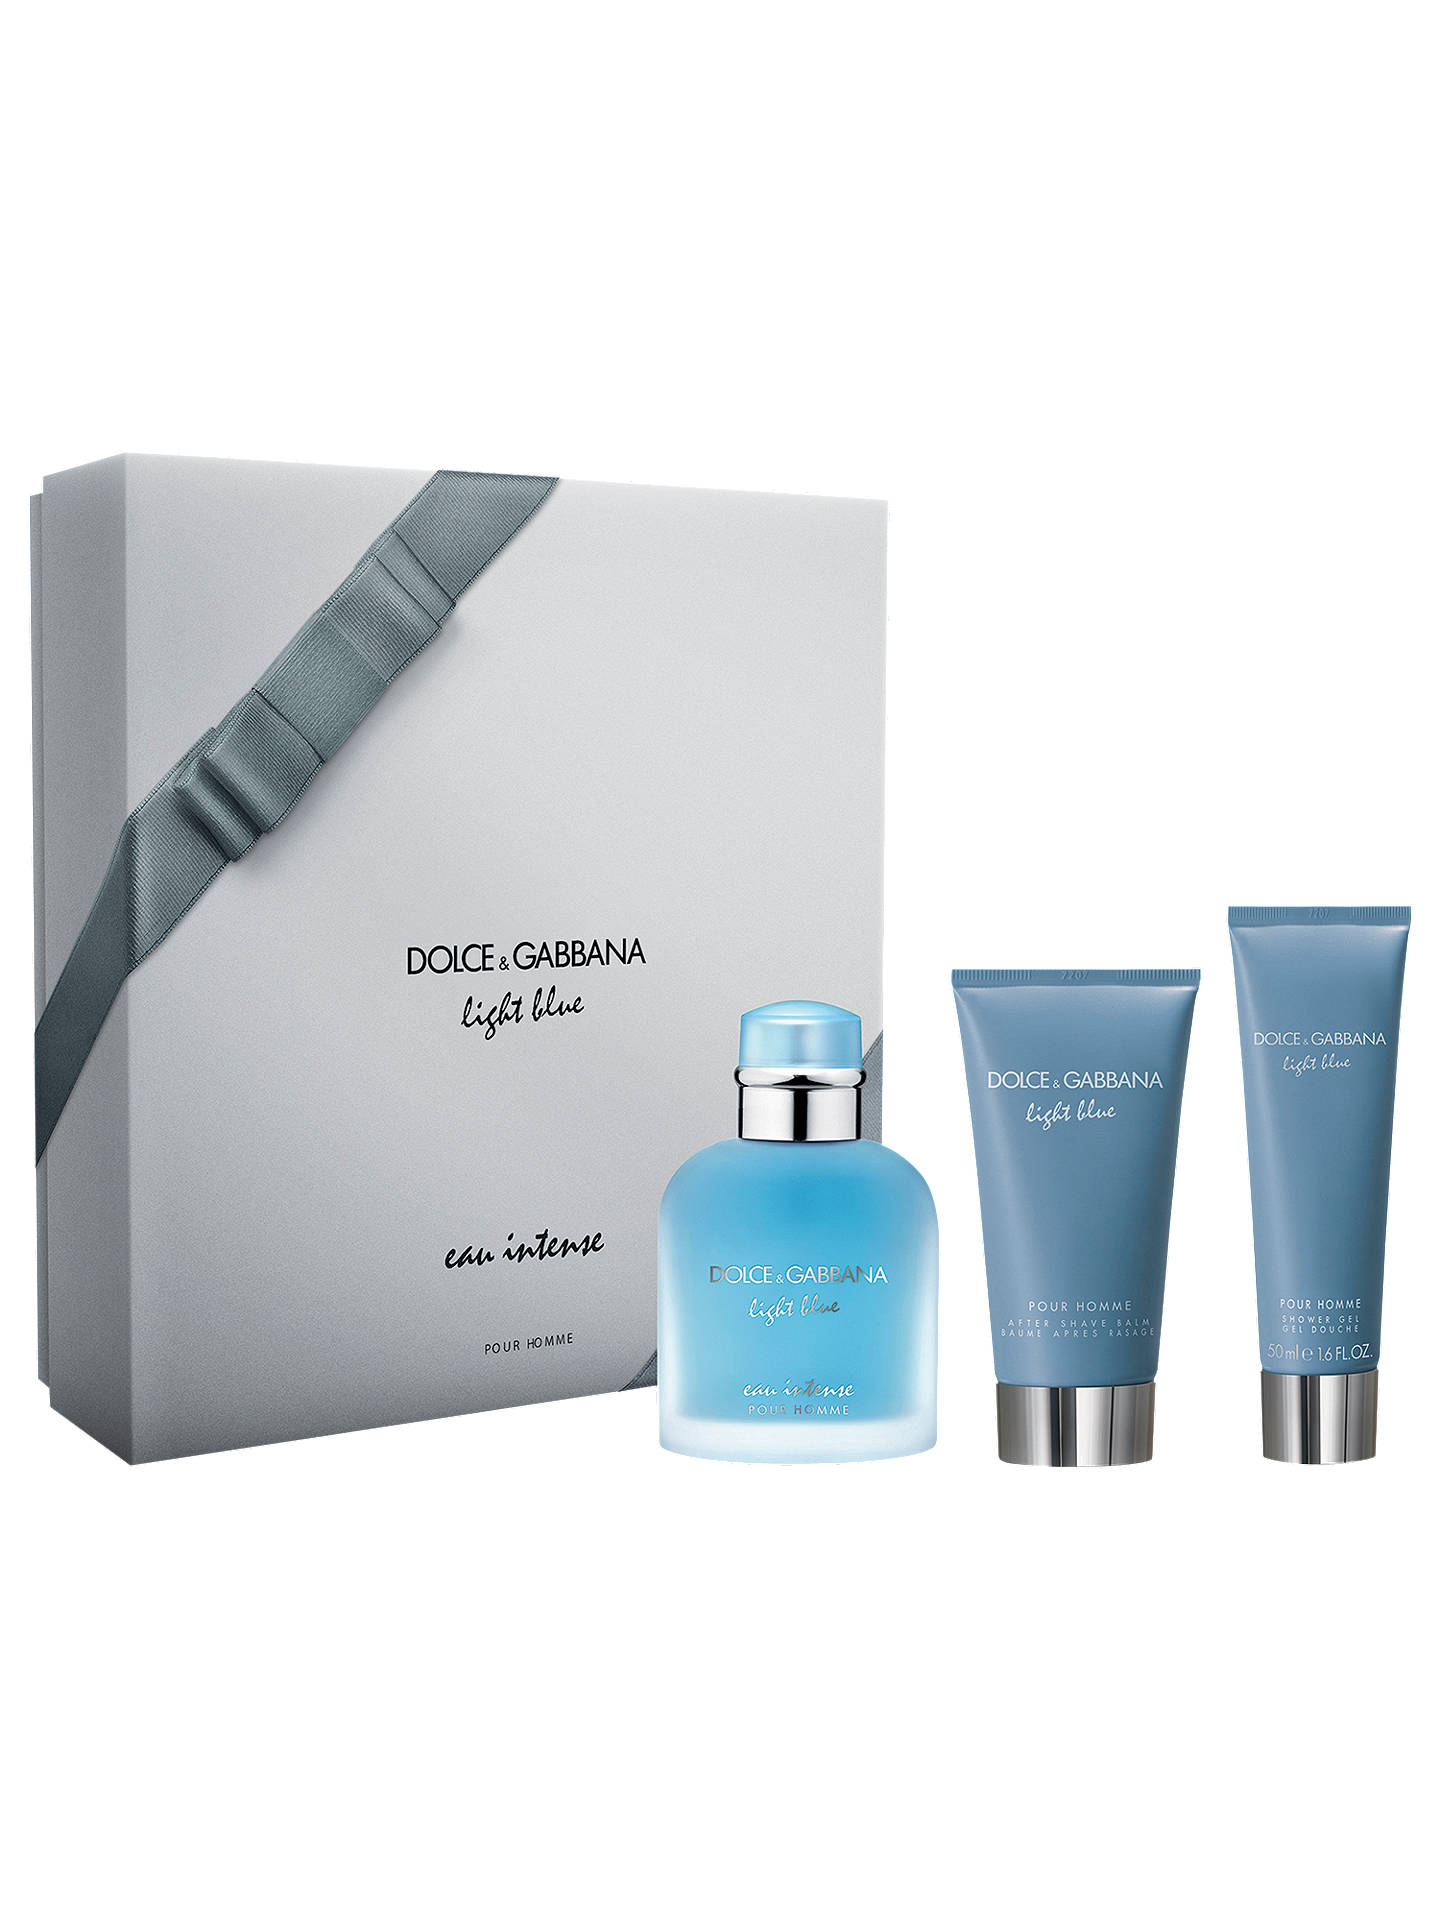 BuyDolce   Gabbana Light Blue Eau Intense Pour Homme 100ml Eau de Parfum  Fragrance Gift Set 4b8556348751